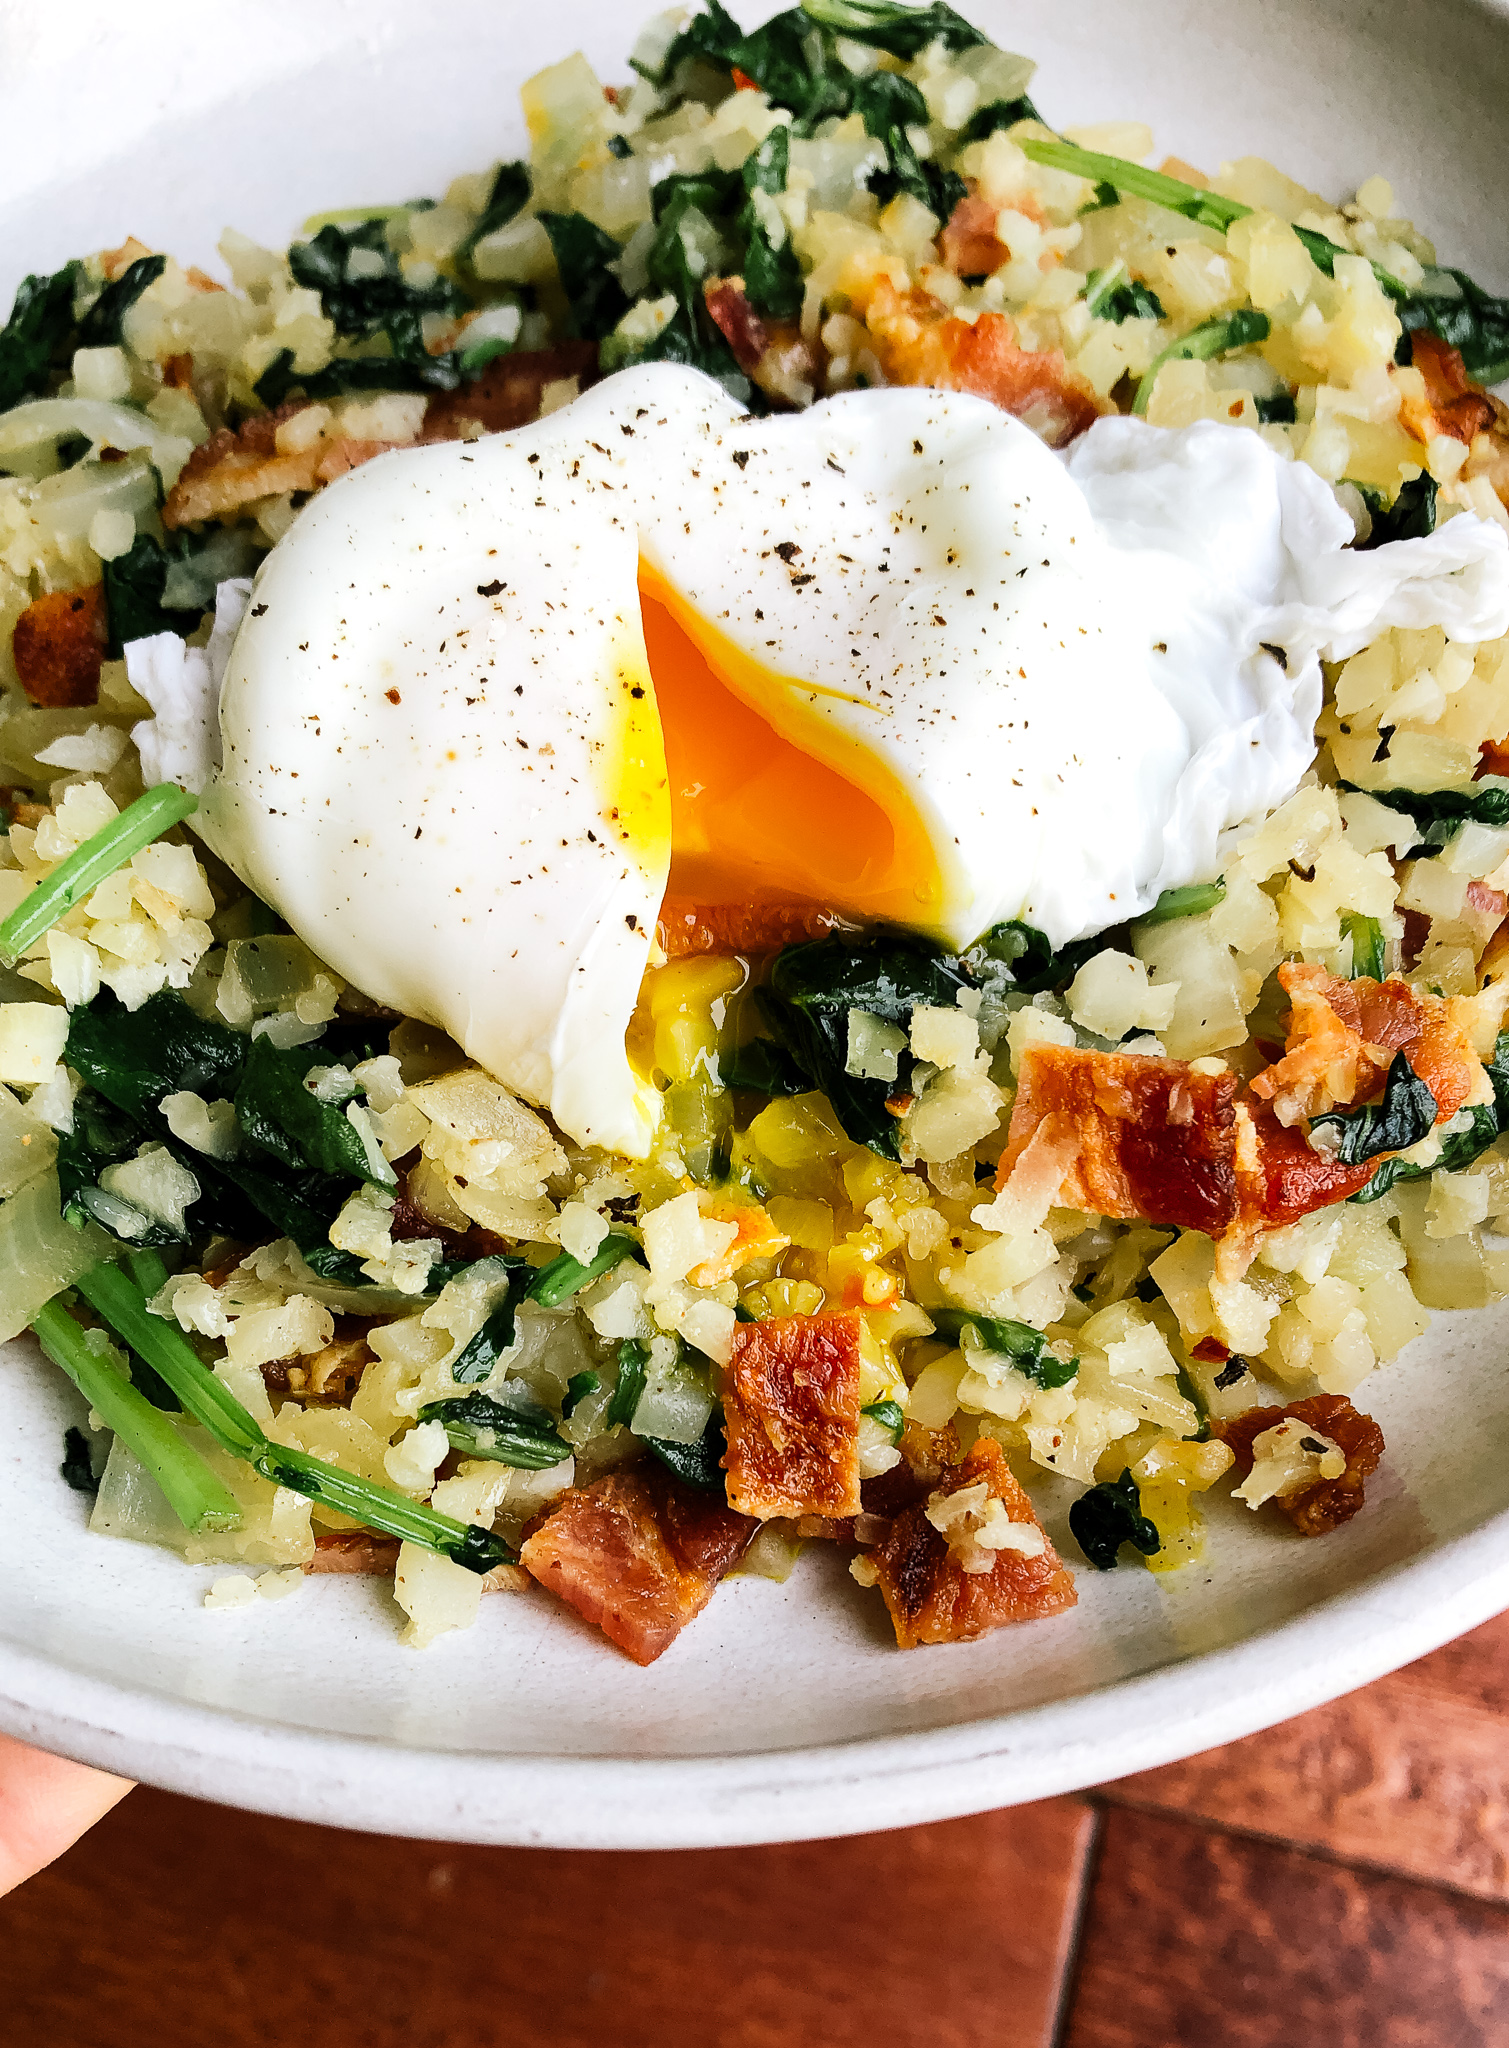 This cauliflower breakfast stir fry is low carb, paleo and whole30 friendly and so, so easy to throw together. It is quick, easy, satisfying and healthy all the things I look for in a paleo breakfast. This simple stir fry is perfect any time of day.